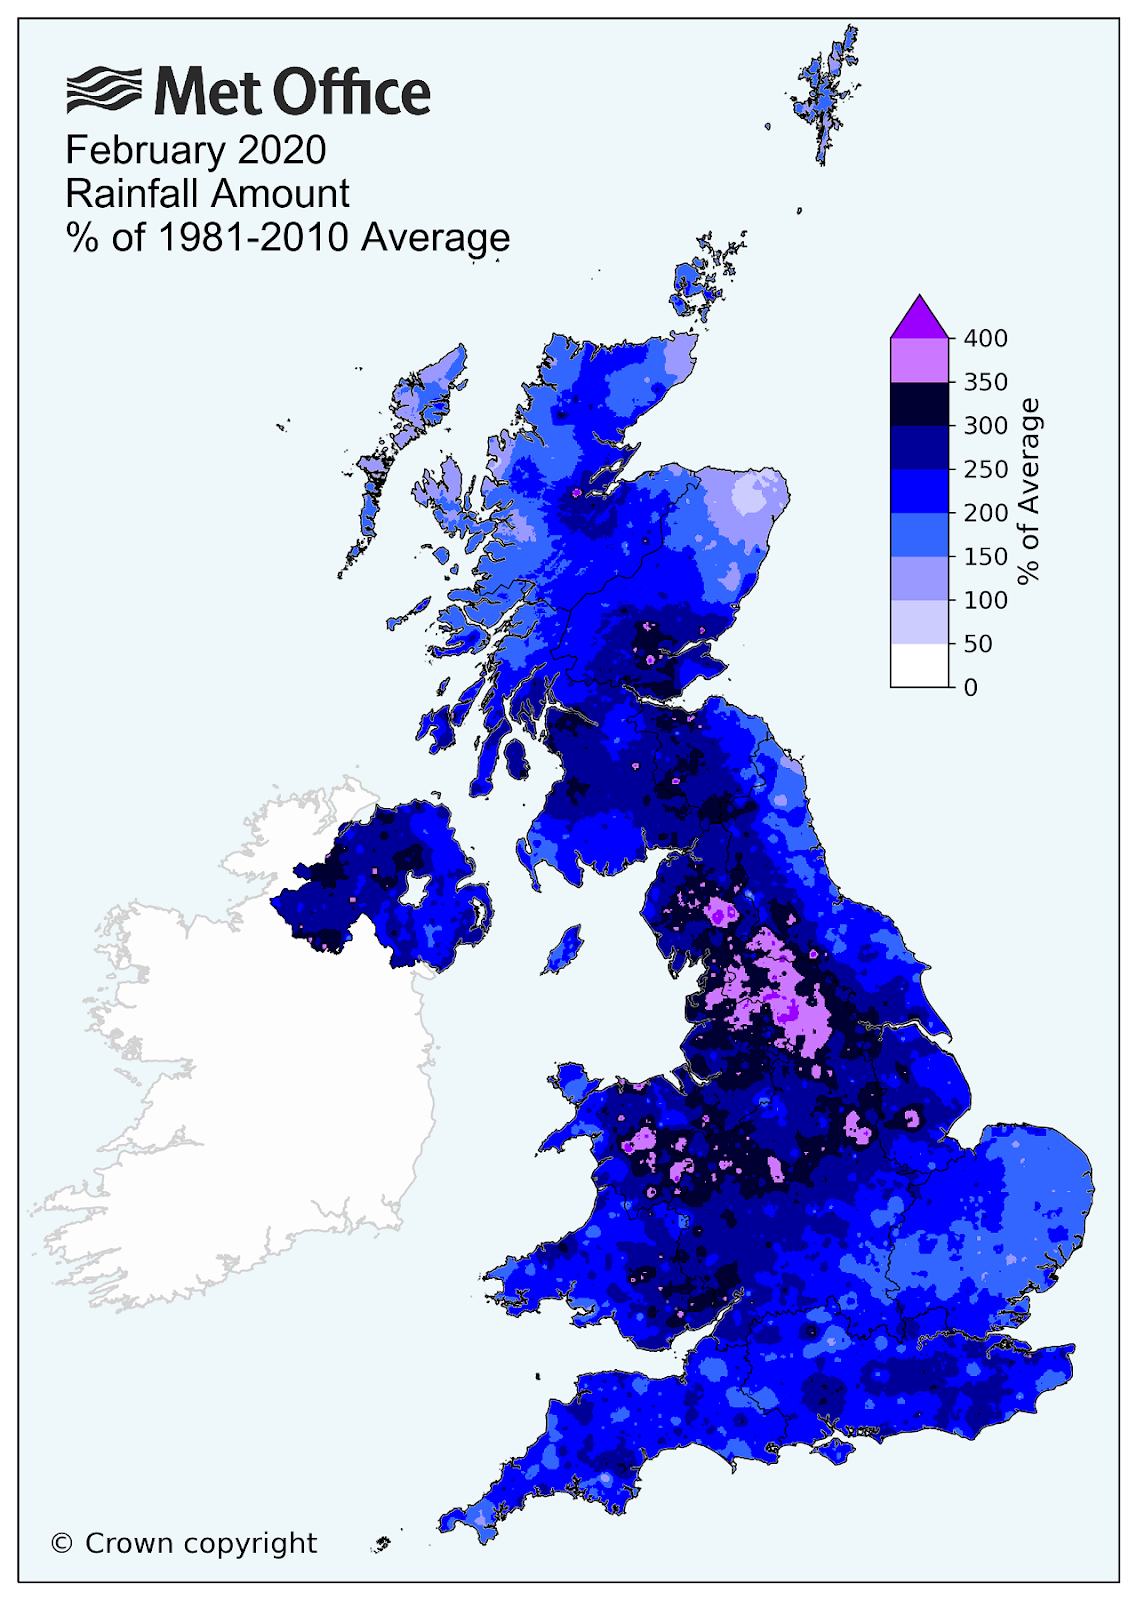 Met Office February 2020 Rainfall Amount Percent of 1981 to 2010 average (ranges from 100% to 400% in small areas)